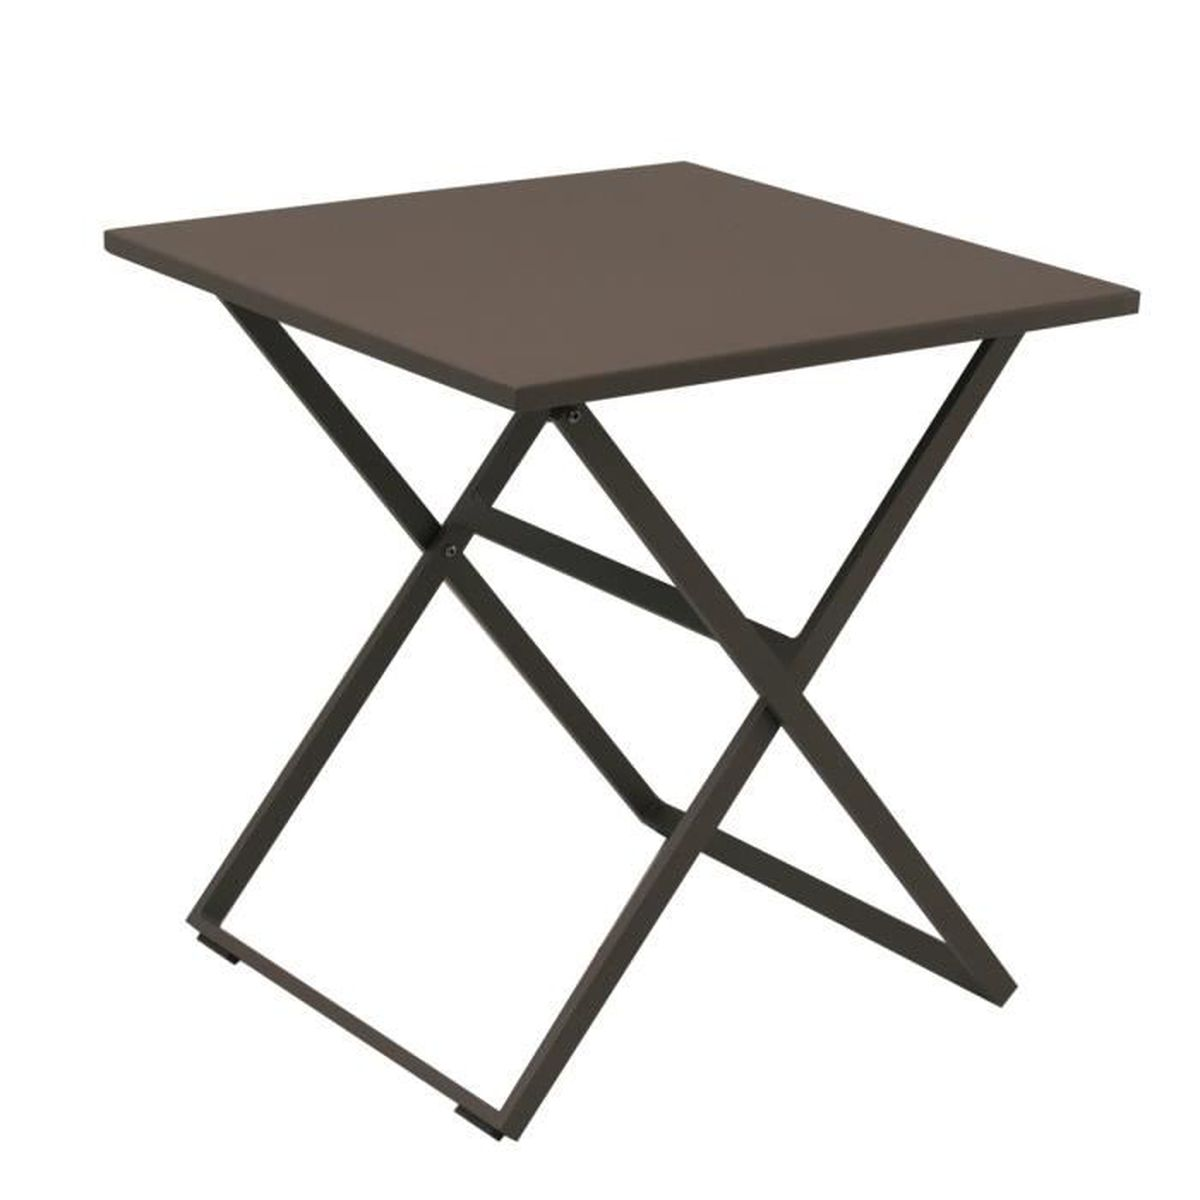 Table exterieur pliante carr e en aluminium rosy tresi for Table d exterieur en aluminium